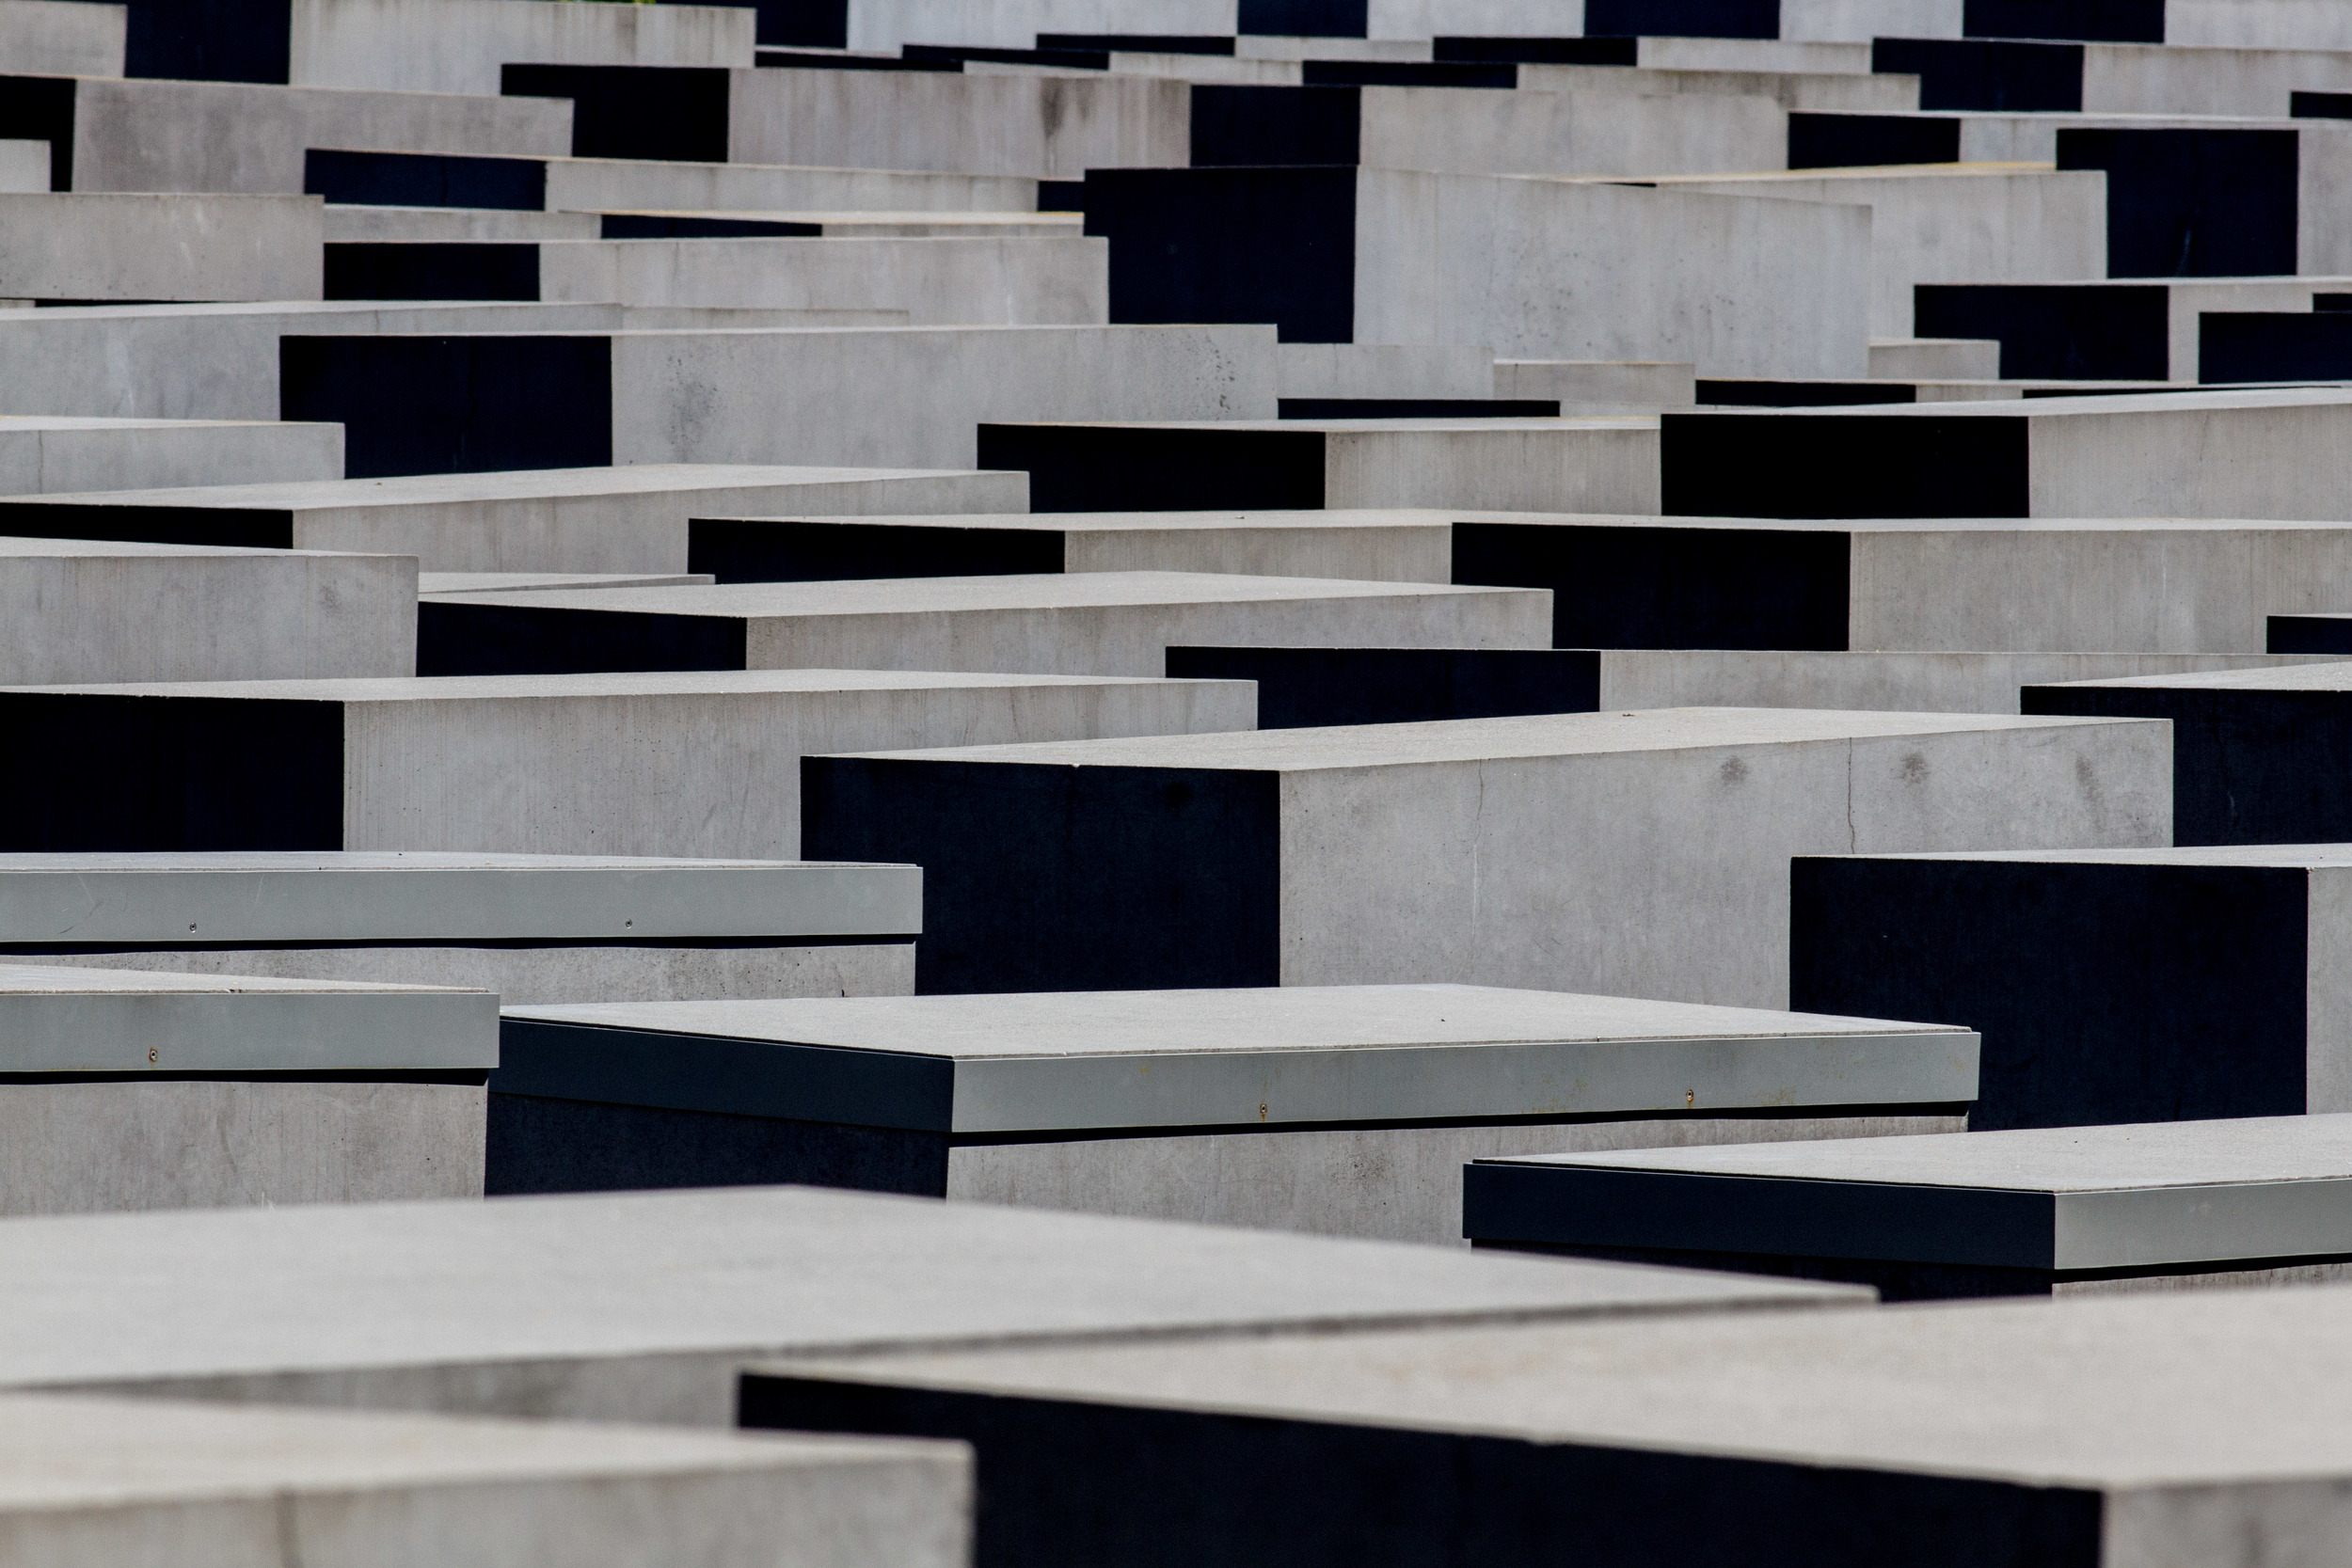 Field of Stelae known as the Holocaust Memorial by Peter Eisenman. The austerity of the structures, their labyrinth and repetition are powerfully emotive yet very understated. A separate exhibition centre provides documentary archive and layers of story that are only hinted at by the memorial itself. Image by John Dawson